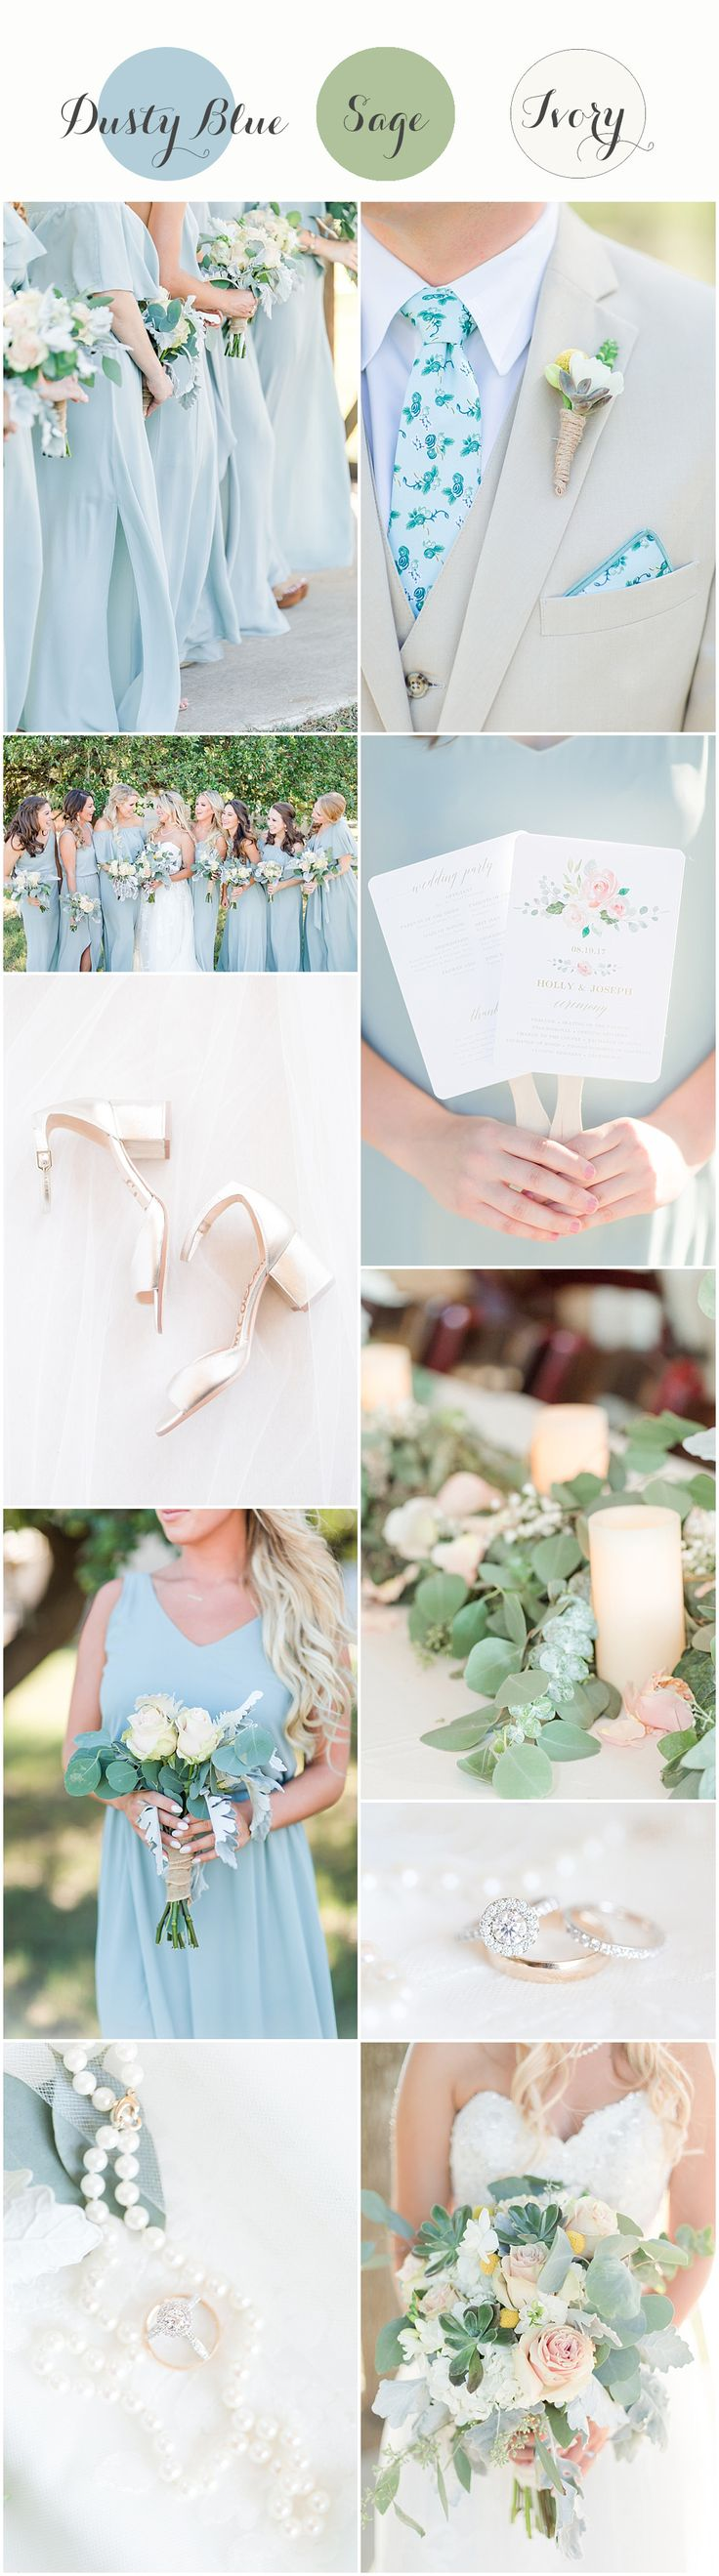 Dusty blue and sage wedding | Perfect for a spring wedding